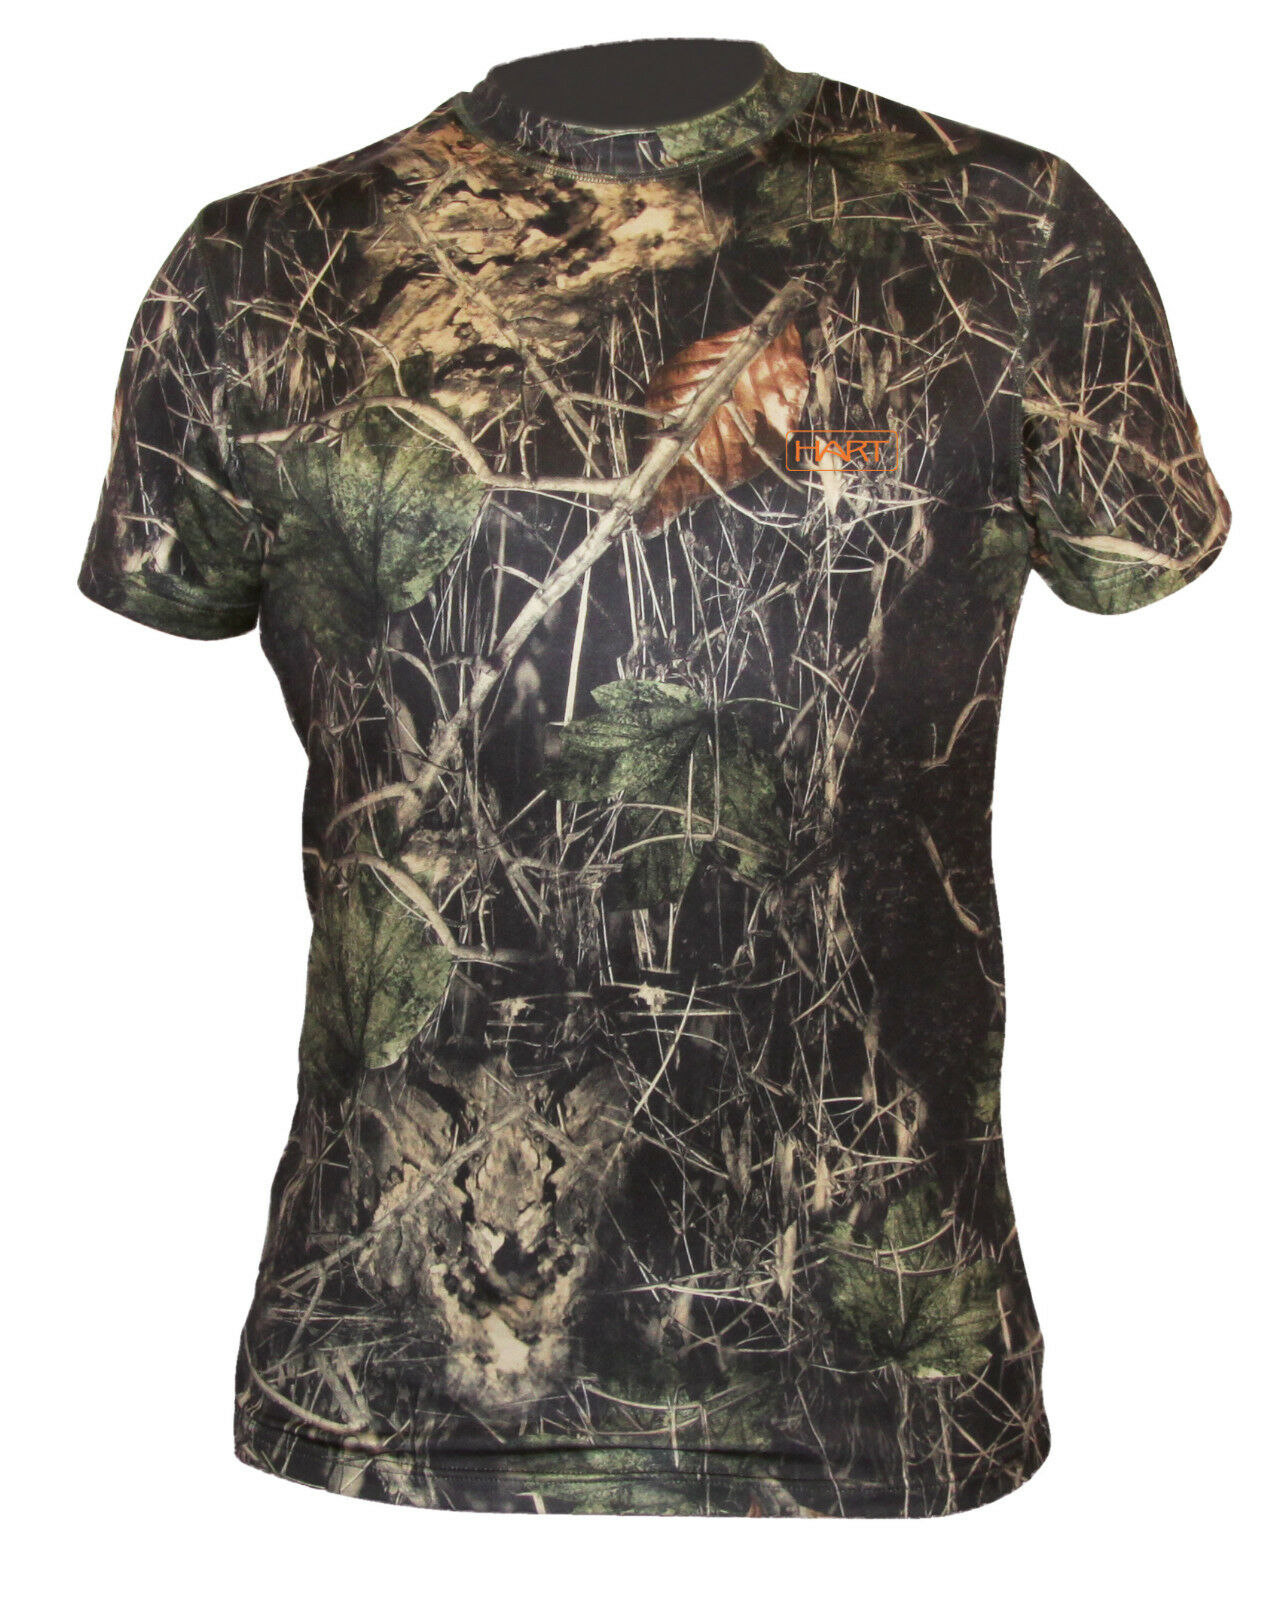 Hart - THERMO SHIRT activa-s - Forest - xhasf